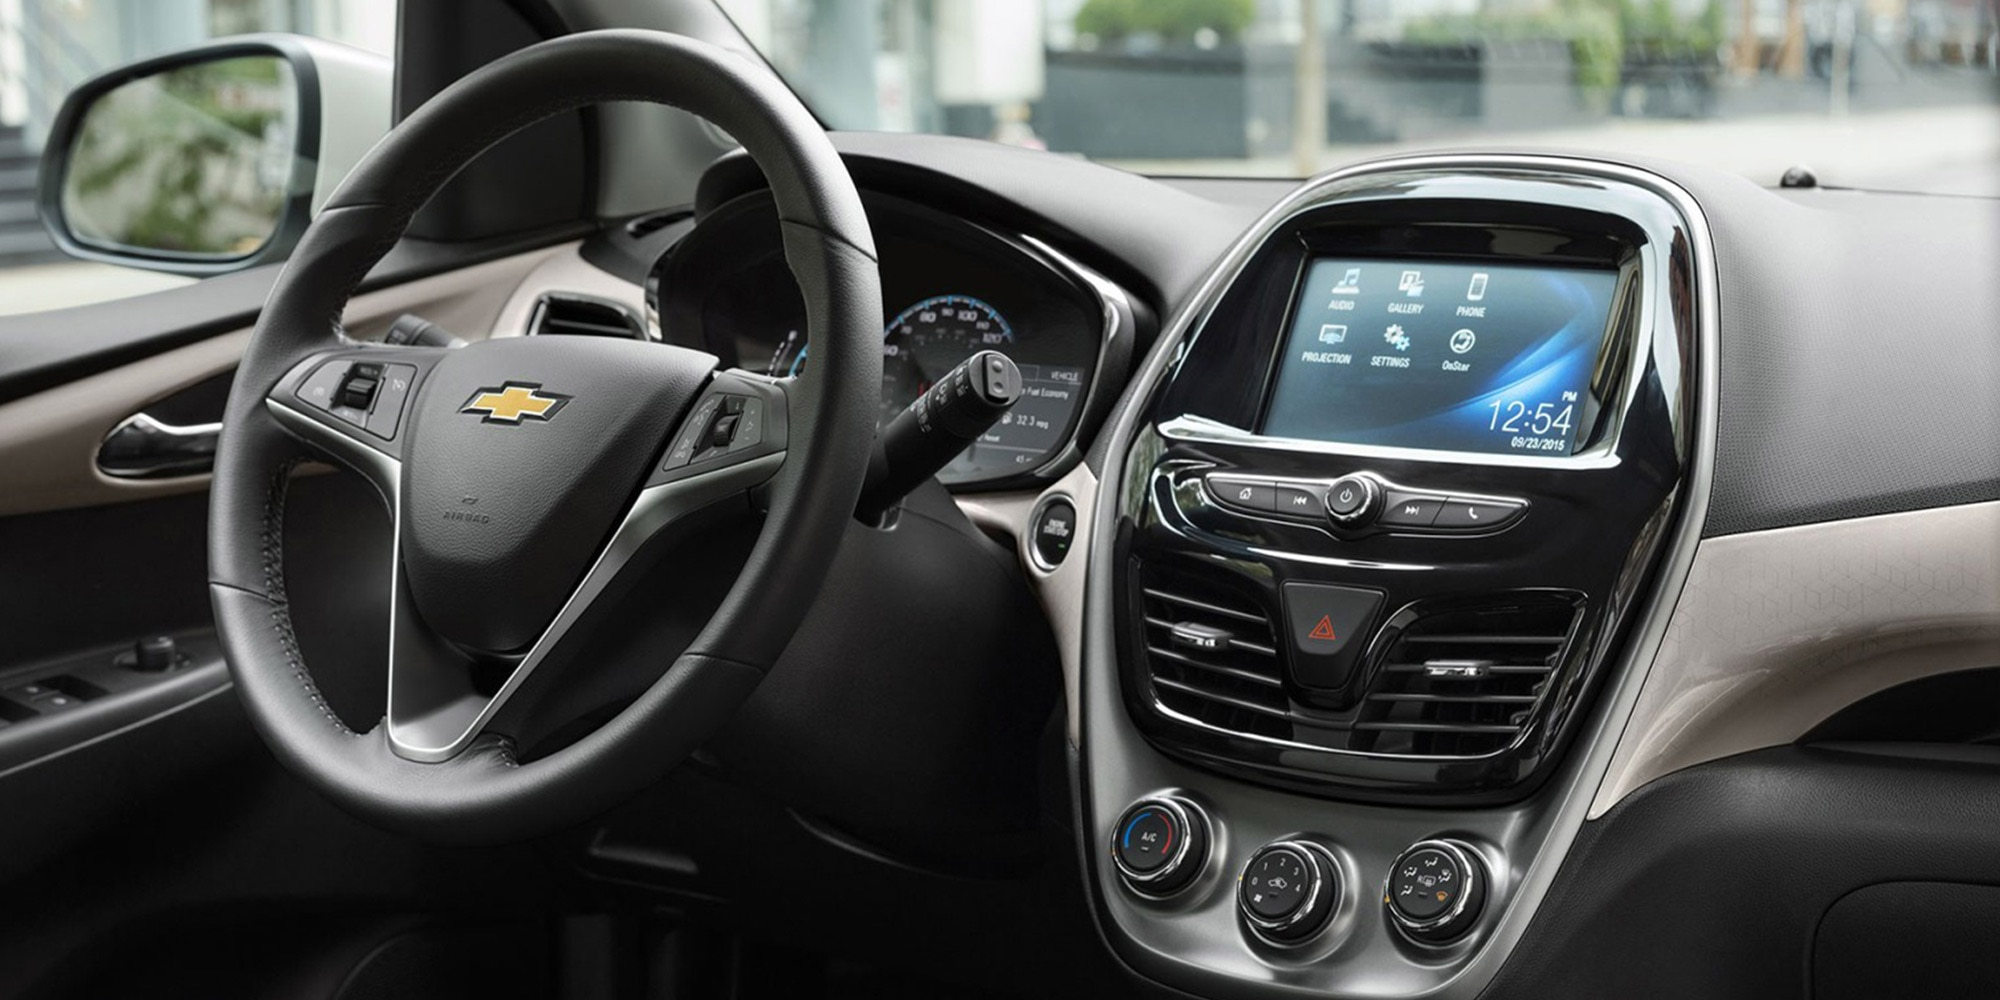 Tecnología de los autos compactos Chevrolet: Apple CarPlay